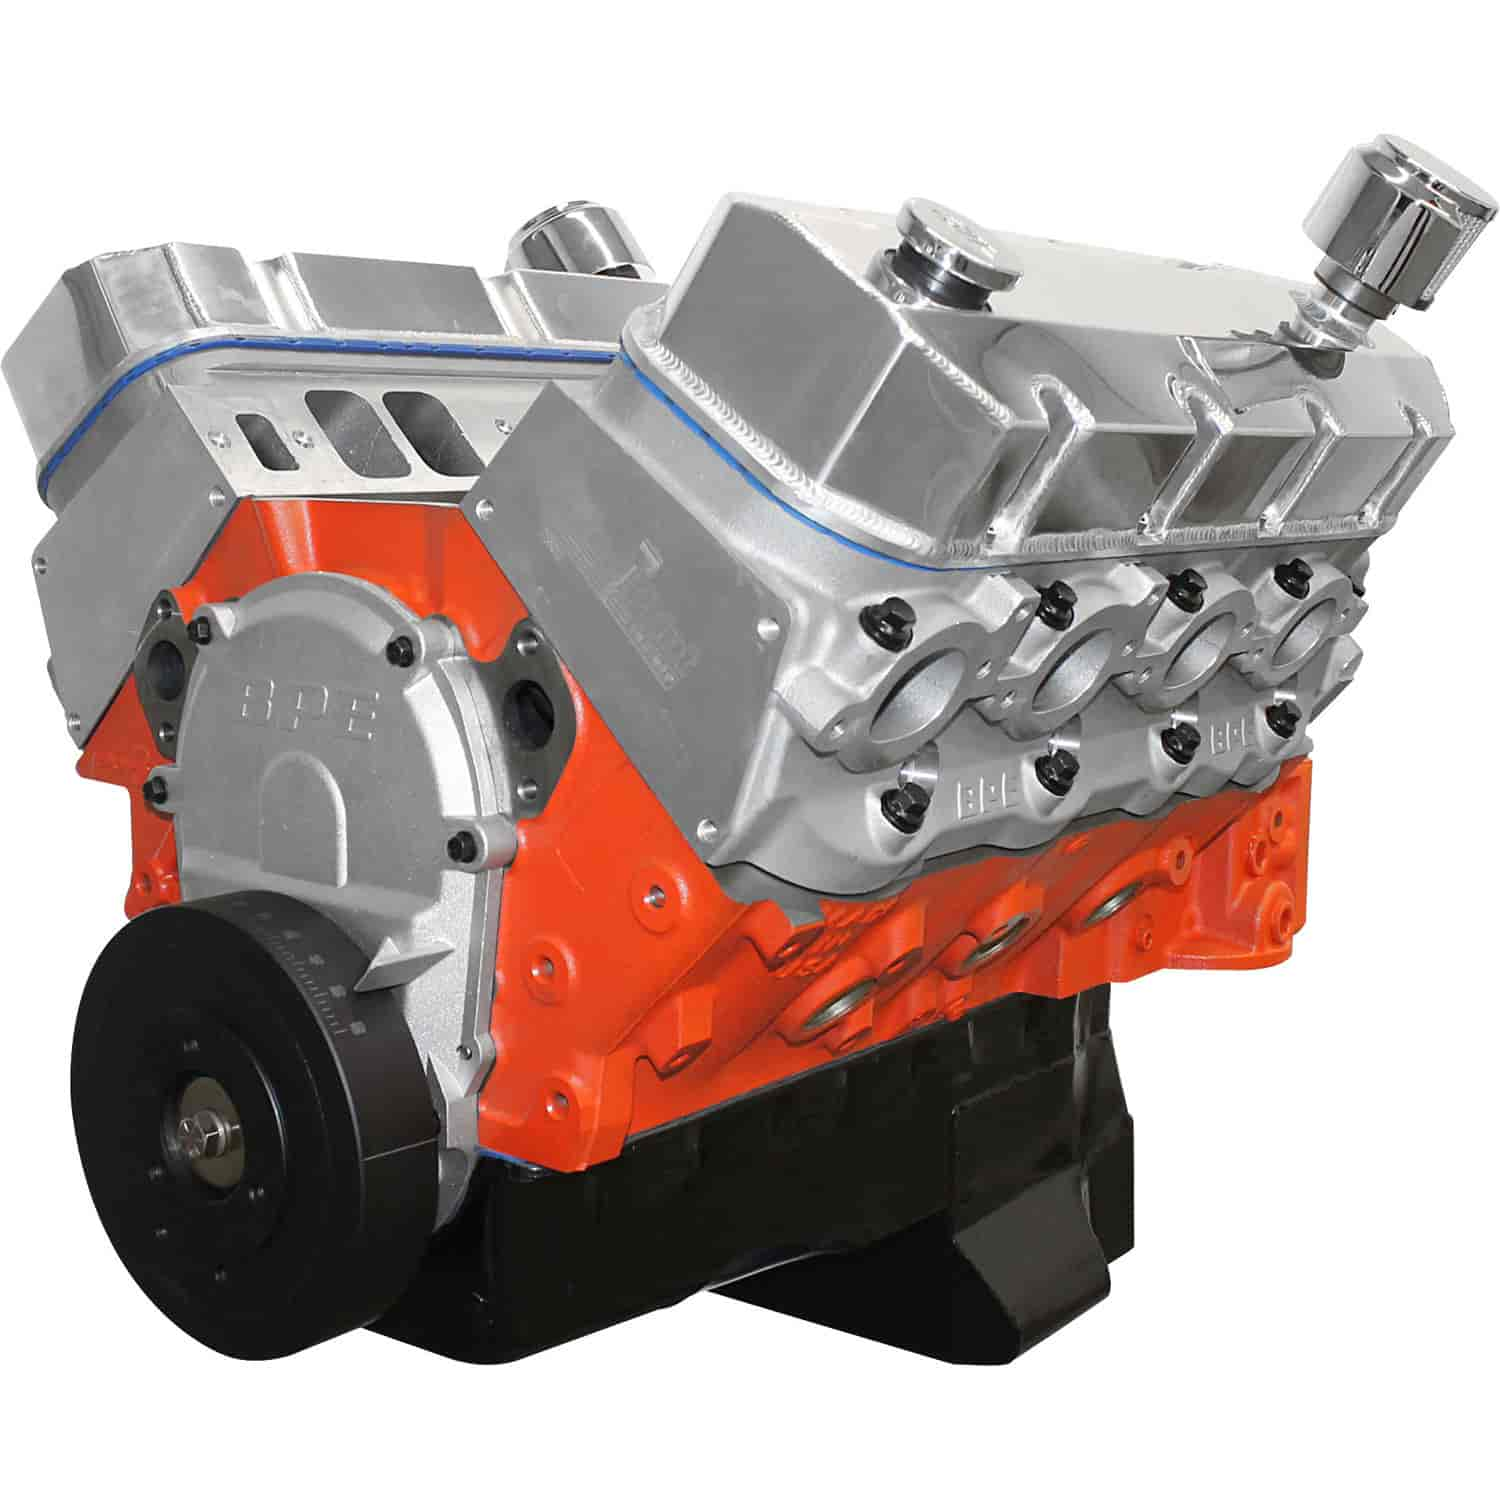 Blueprint engines ps5980ct1 blueprint pro series bbc 598ci724hp blueprint engines ps5980ct1 malvernweather